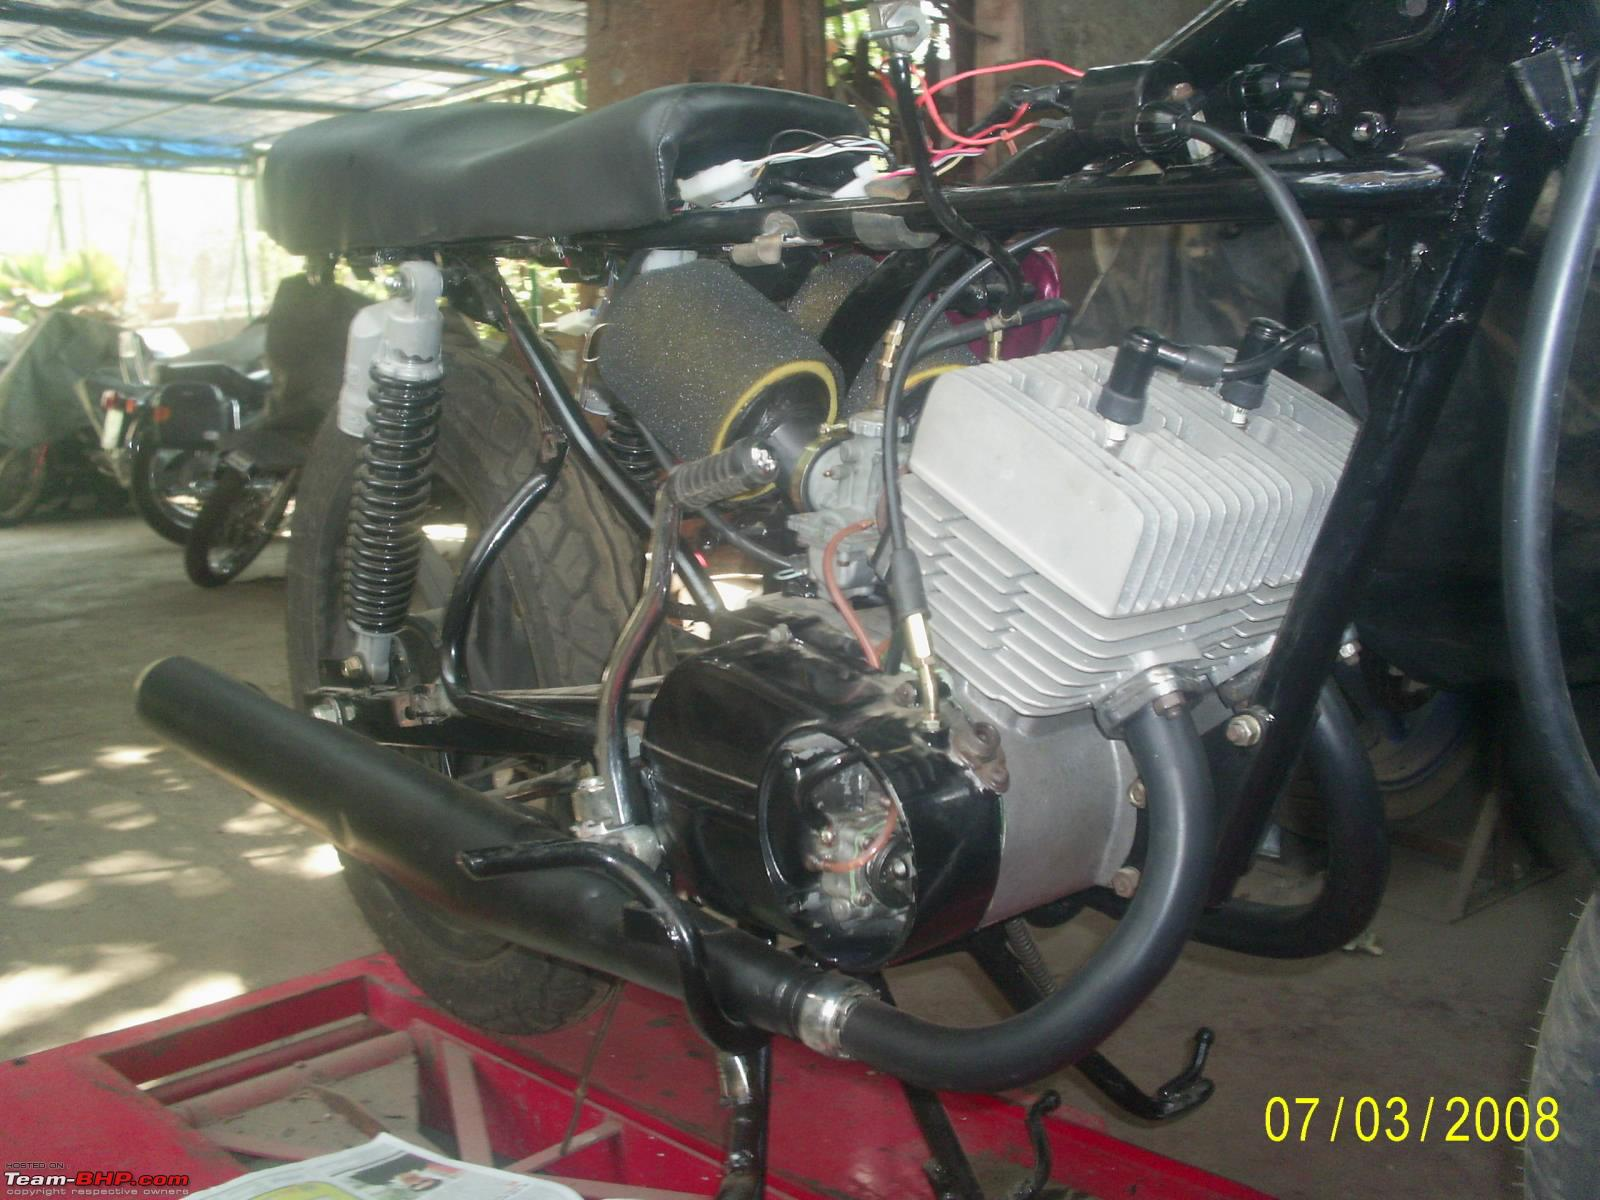 Yamaha Rd200 Wiring Diagram Diagrams My Barn Finds Rd 125 200 S5024268 Charming 74